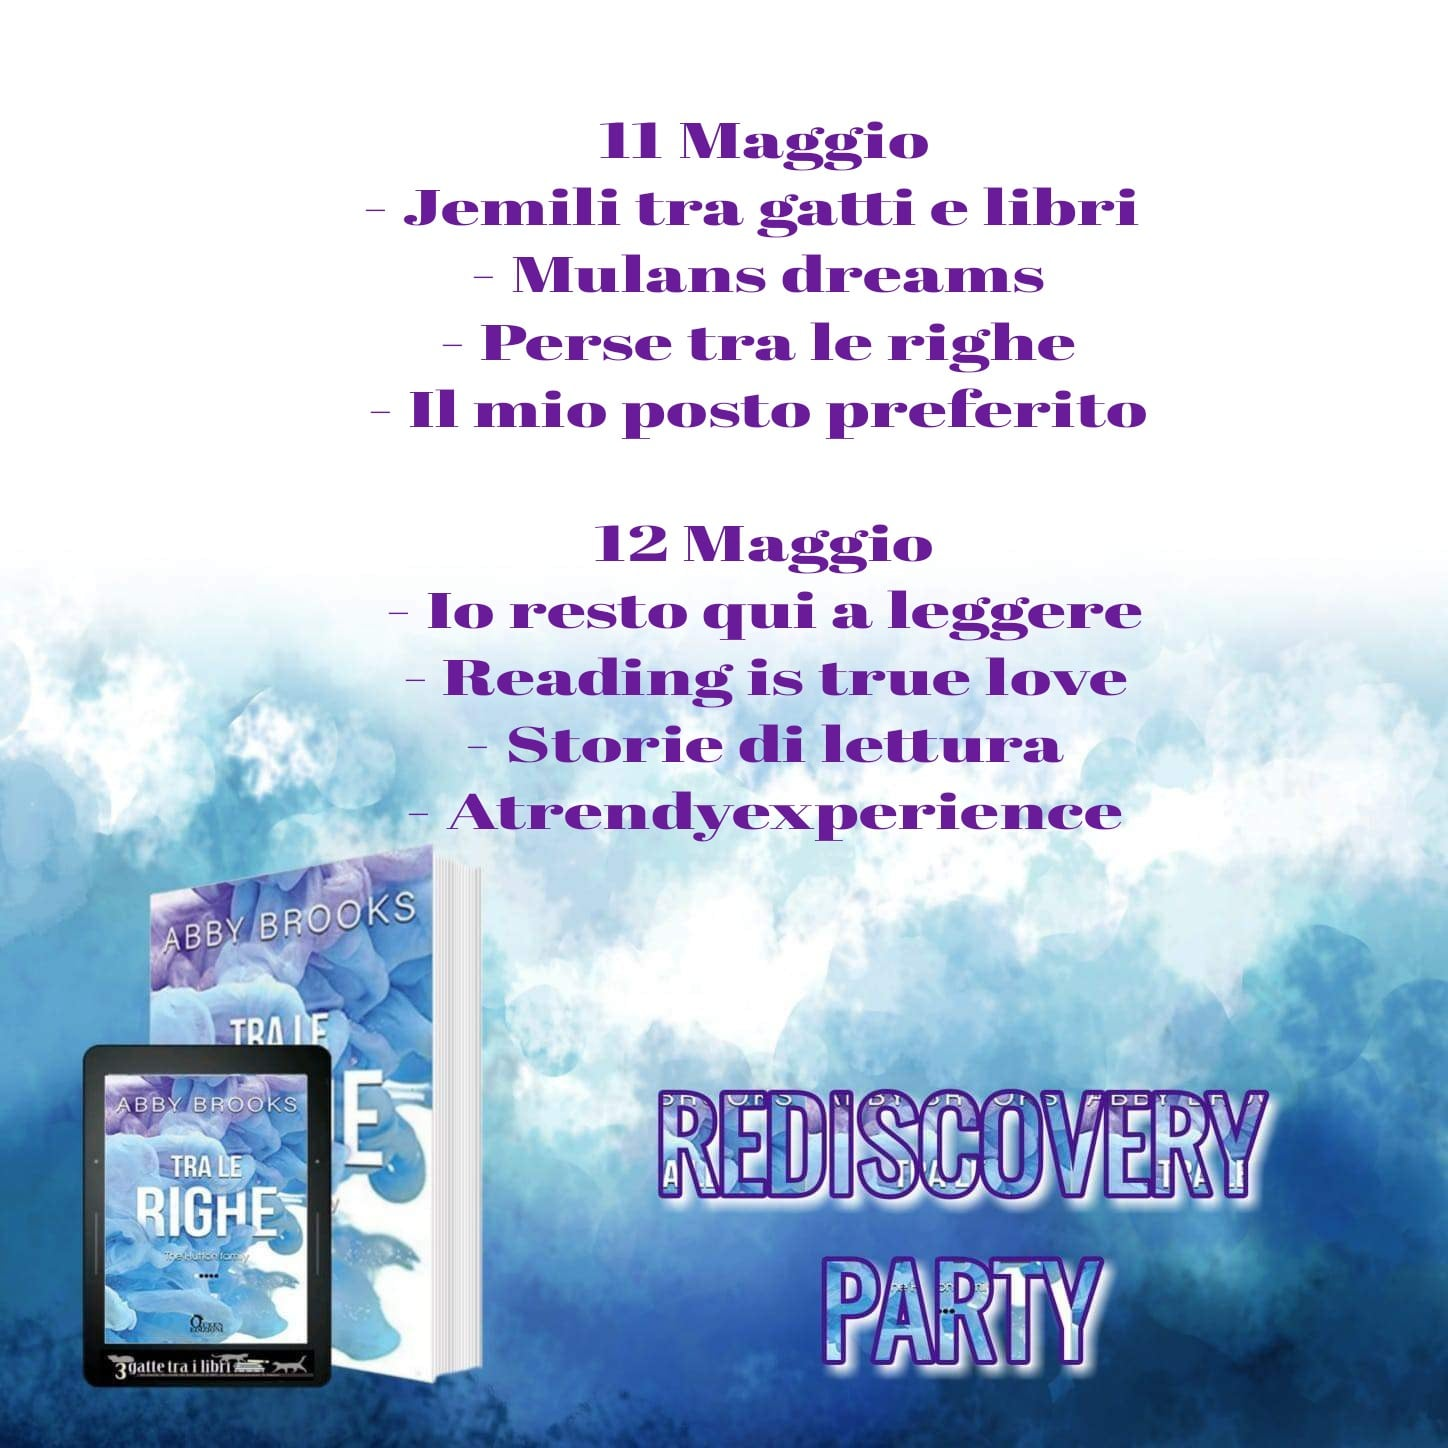 rediscovery party di abby brooks